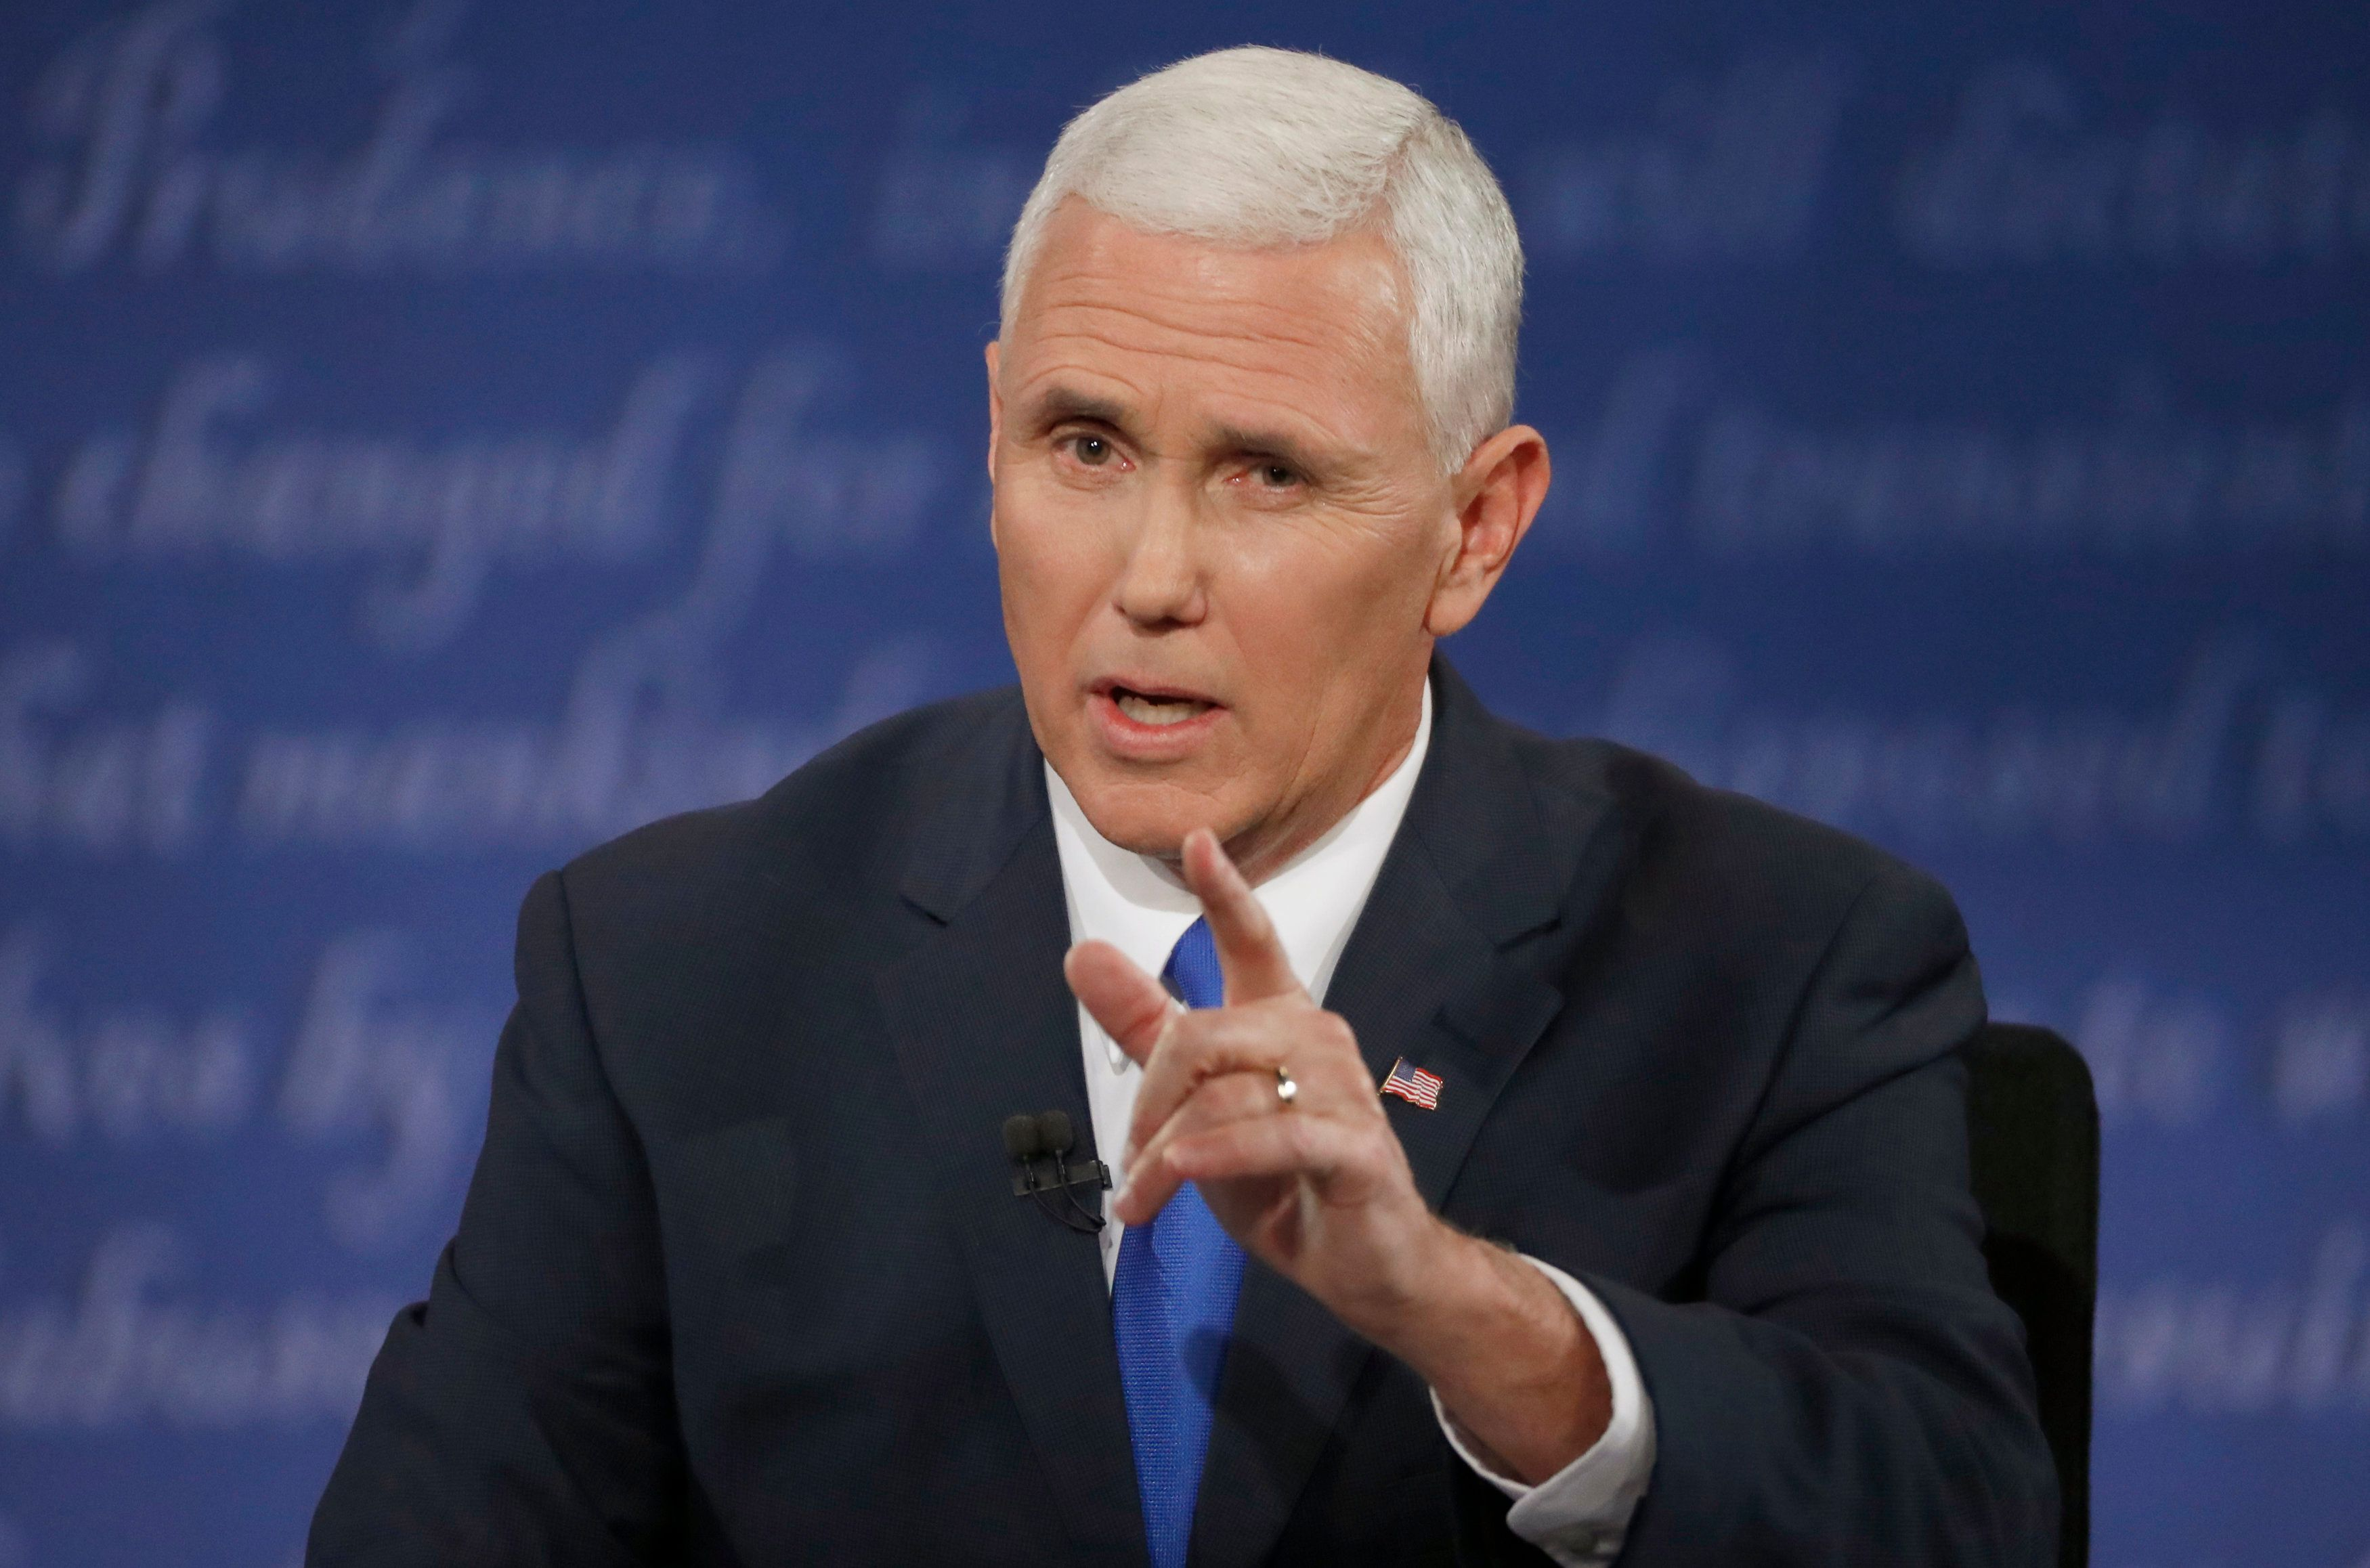 Republican U.S. vice presidential nominee Governor Mike Pence speaks during his debate against Democratic U.S. vice presidential nominee Senator Tim Kaine (not shown) at Longwood University in Farmville, Virginia, U.S., October 4, 2016. REUTERS/Jonathan Ernst